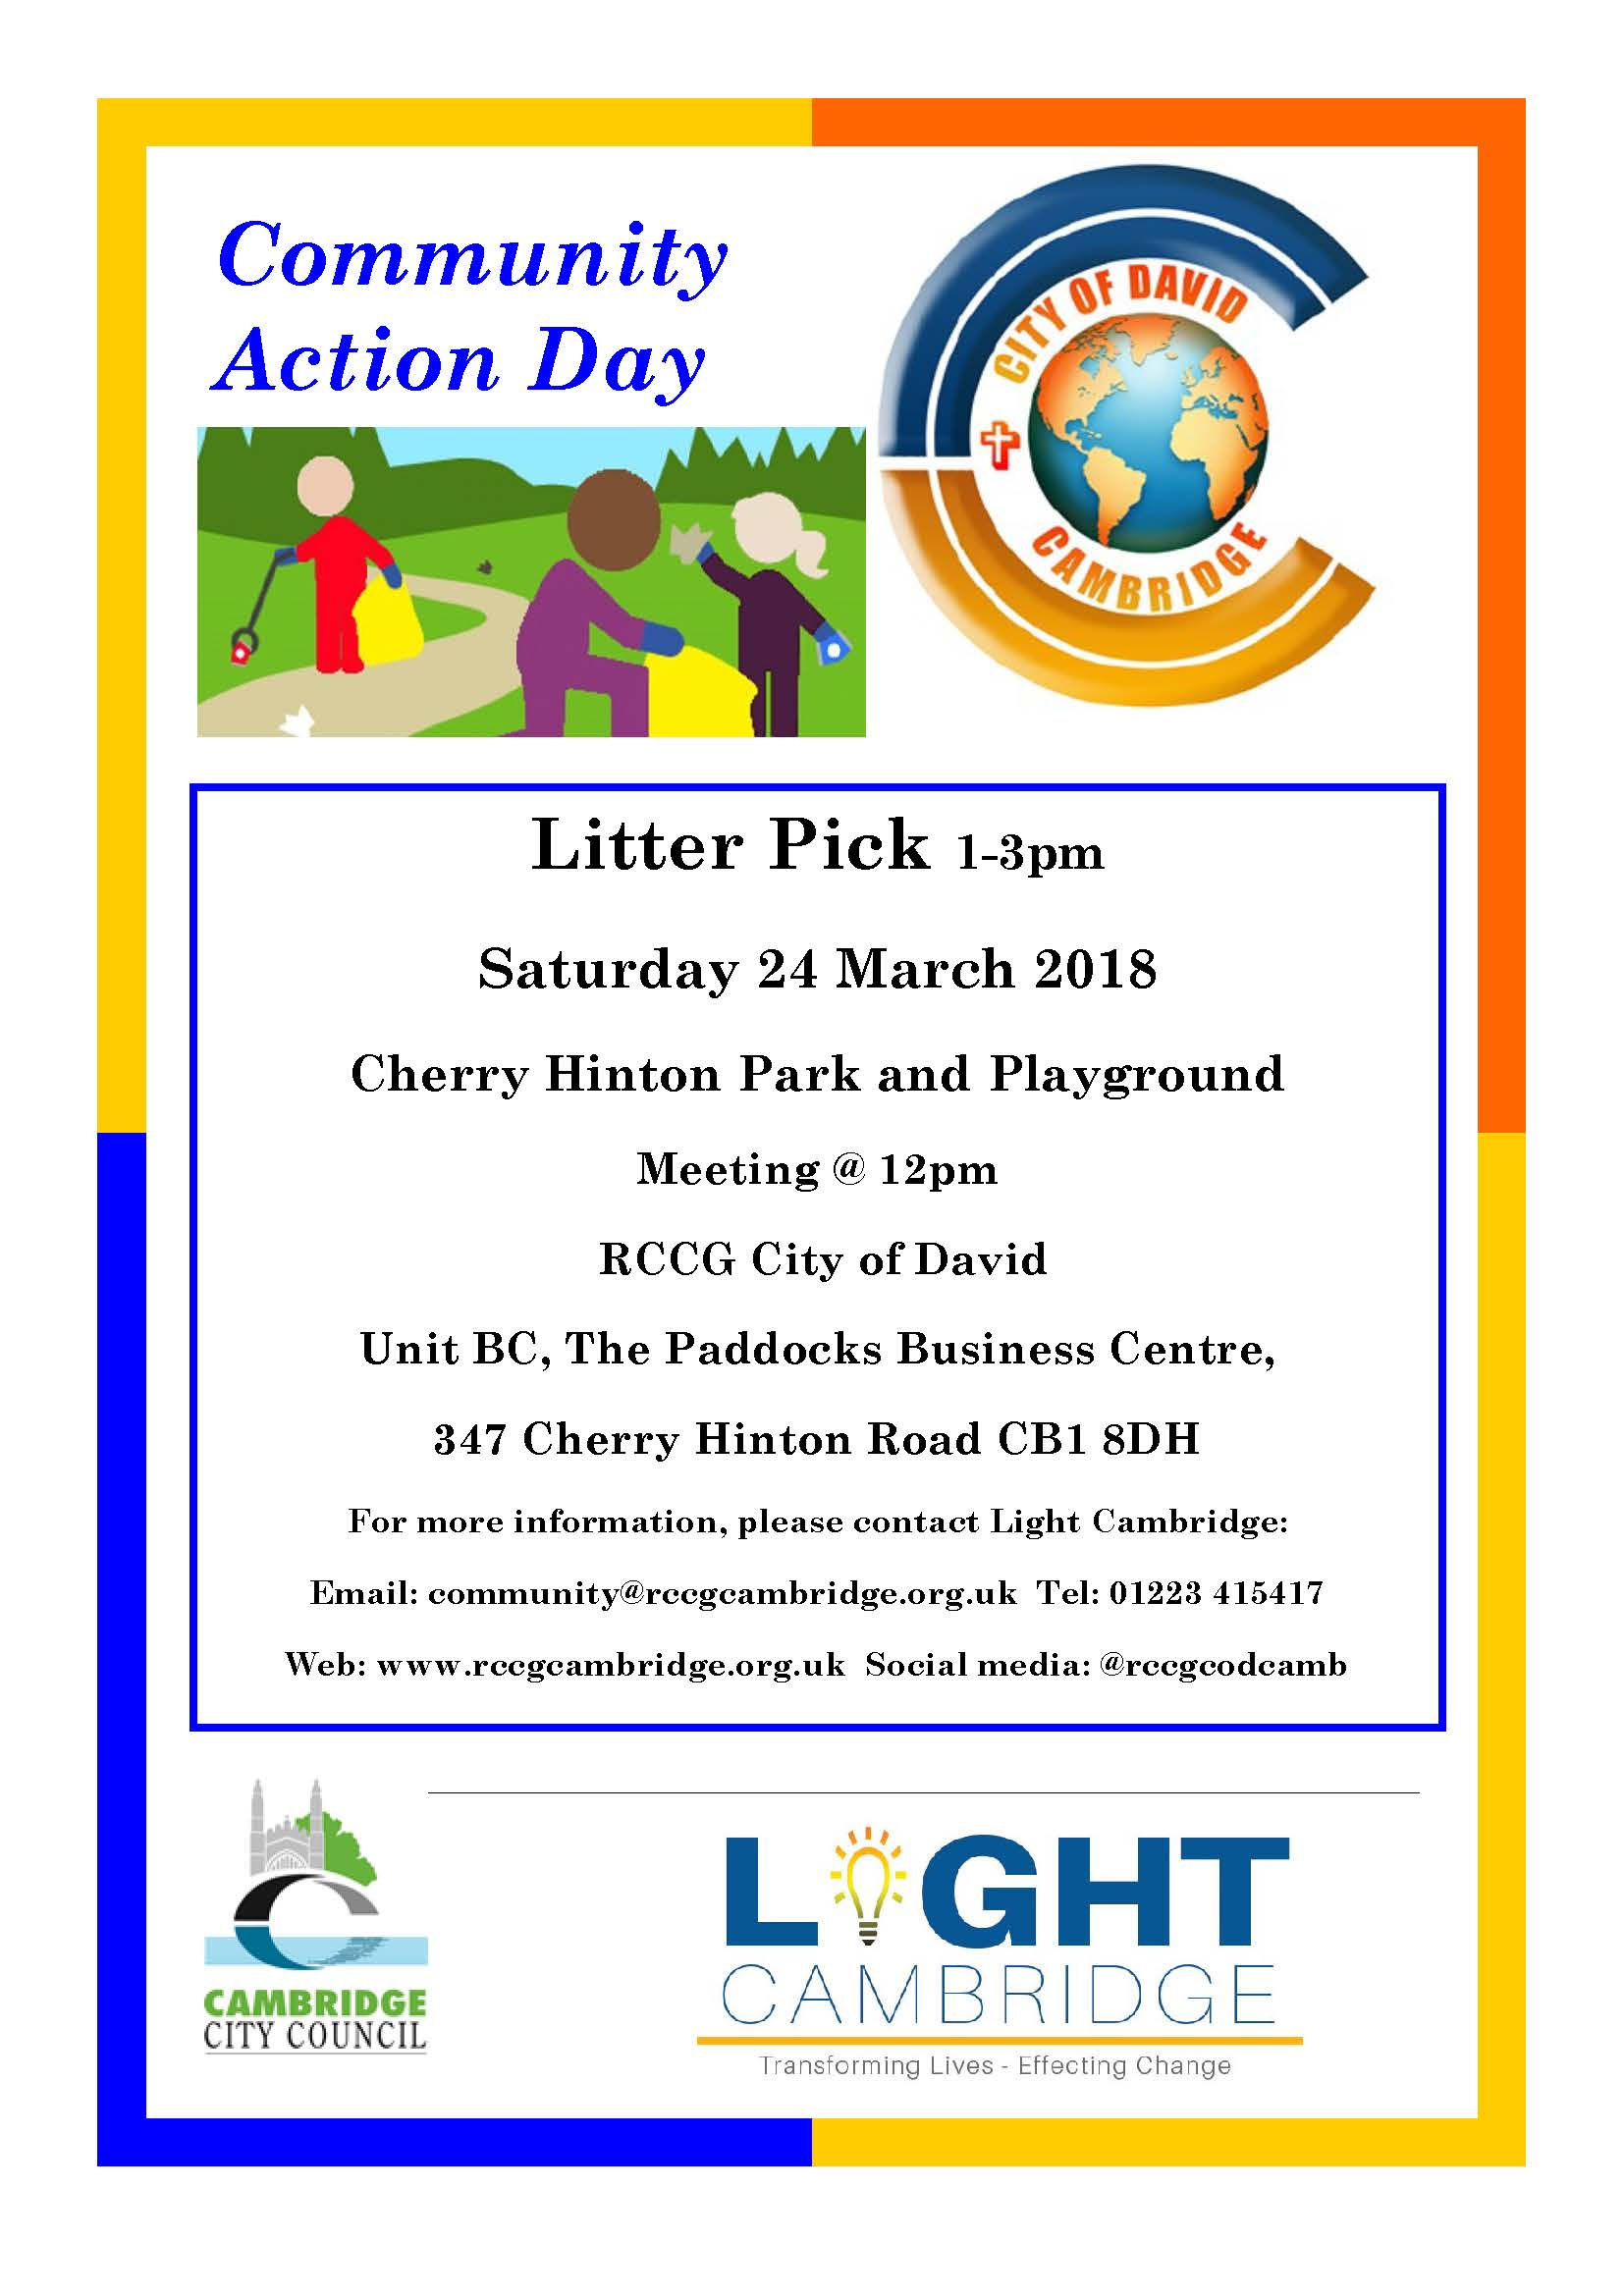 Community Action Day